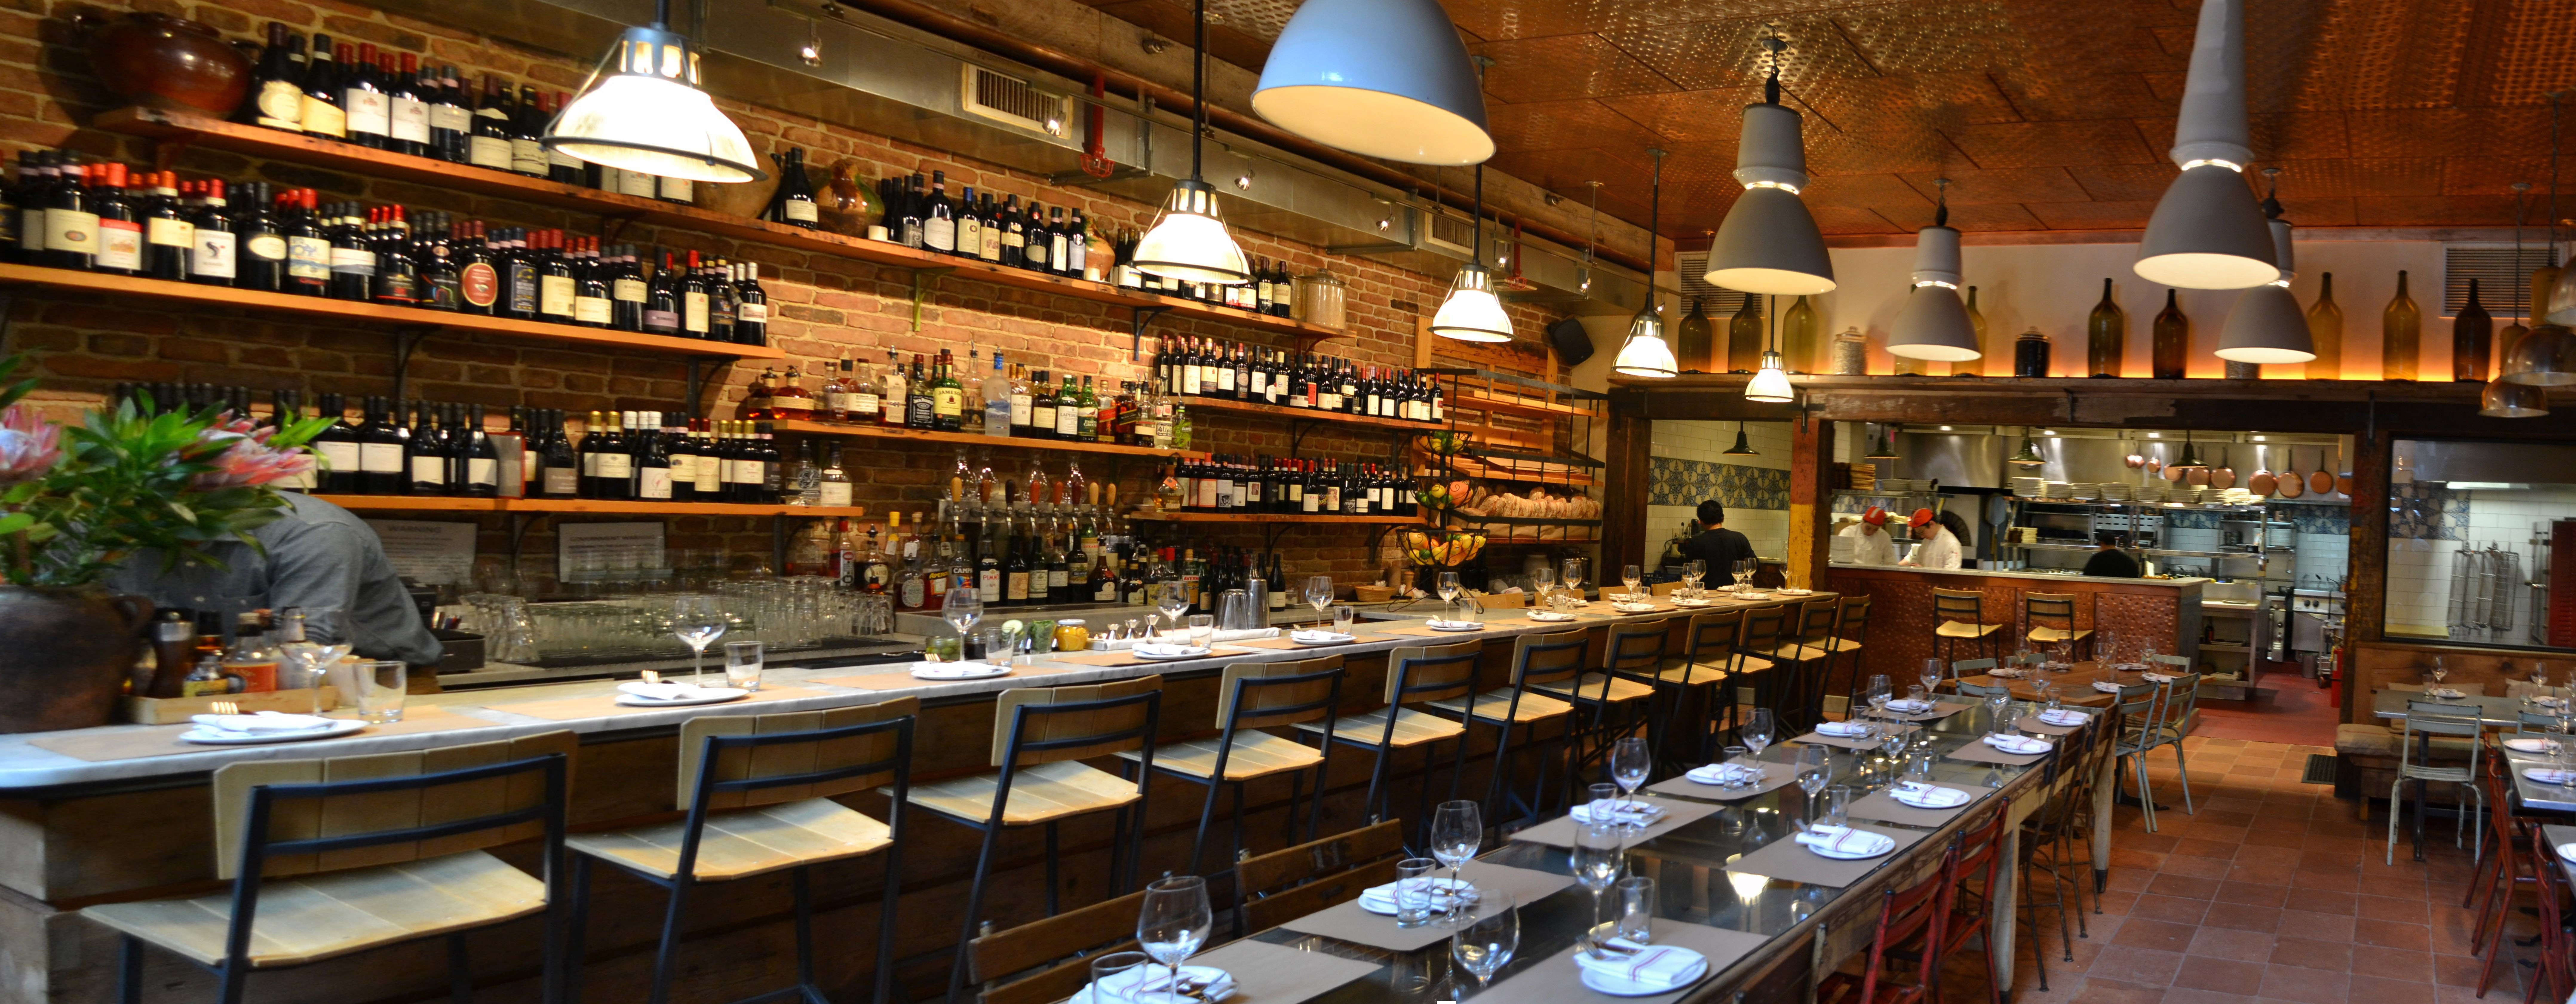 Lunch With Jeremy Parzen Il Buco Alimentari Nyc 5 10 2013